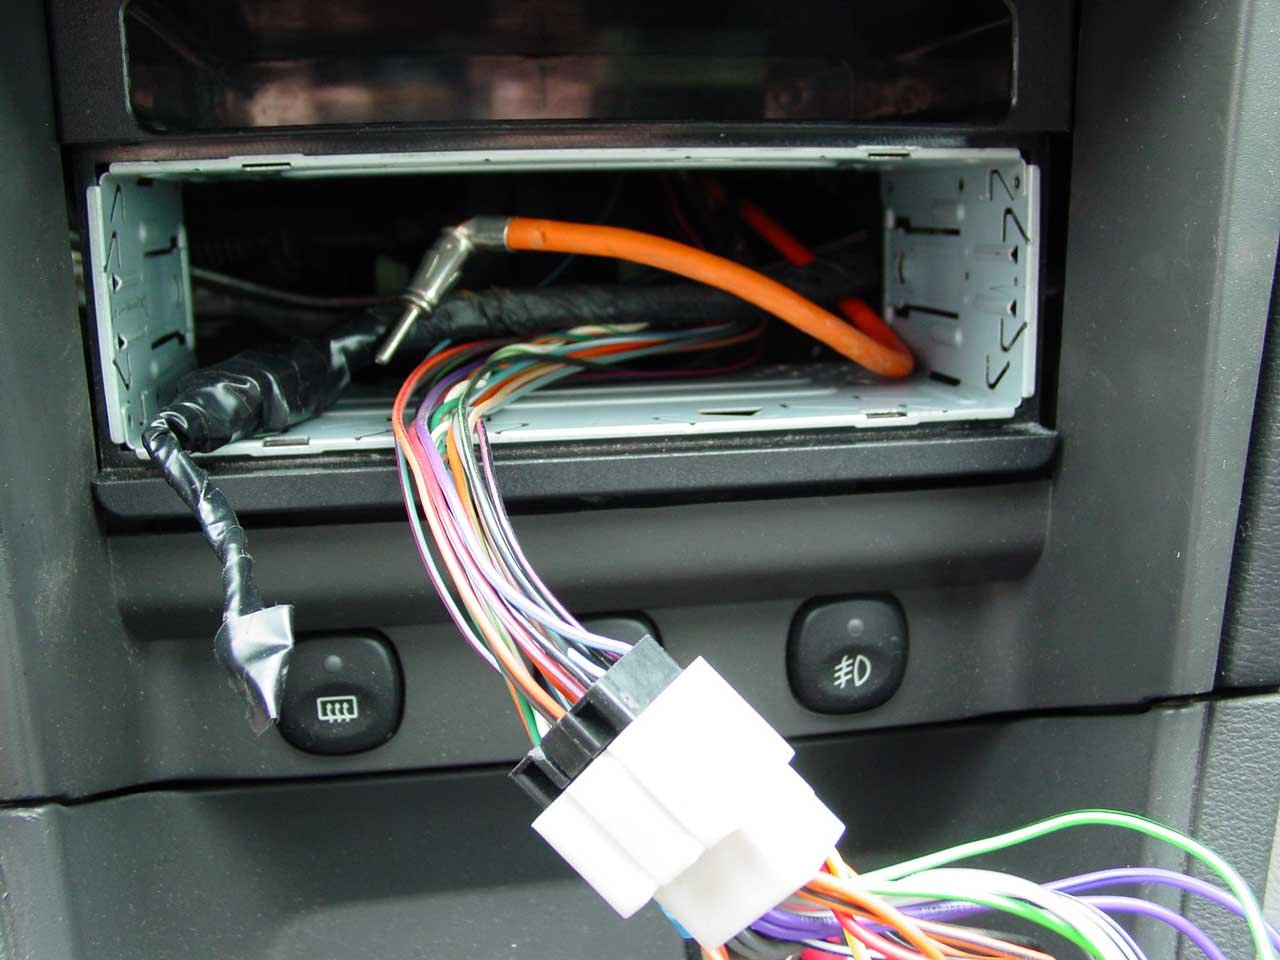 2002 mustang gt mach audio system | ford mustang forum  all ford mustangs